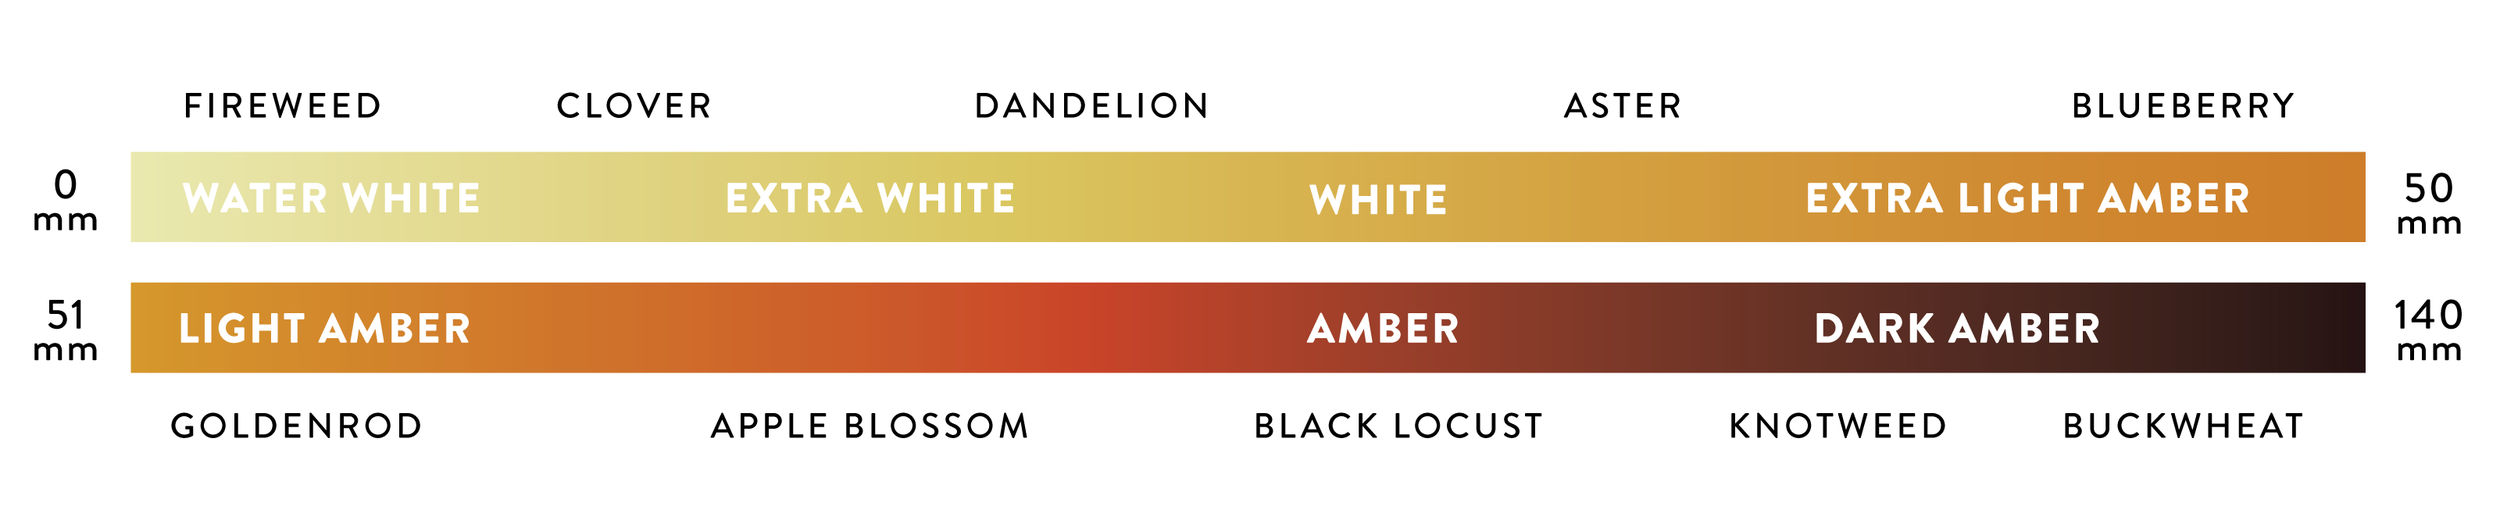 Honey Color Chart with common floral sources, there are seven color grades.